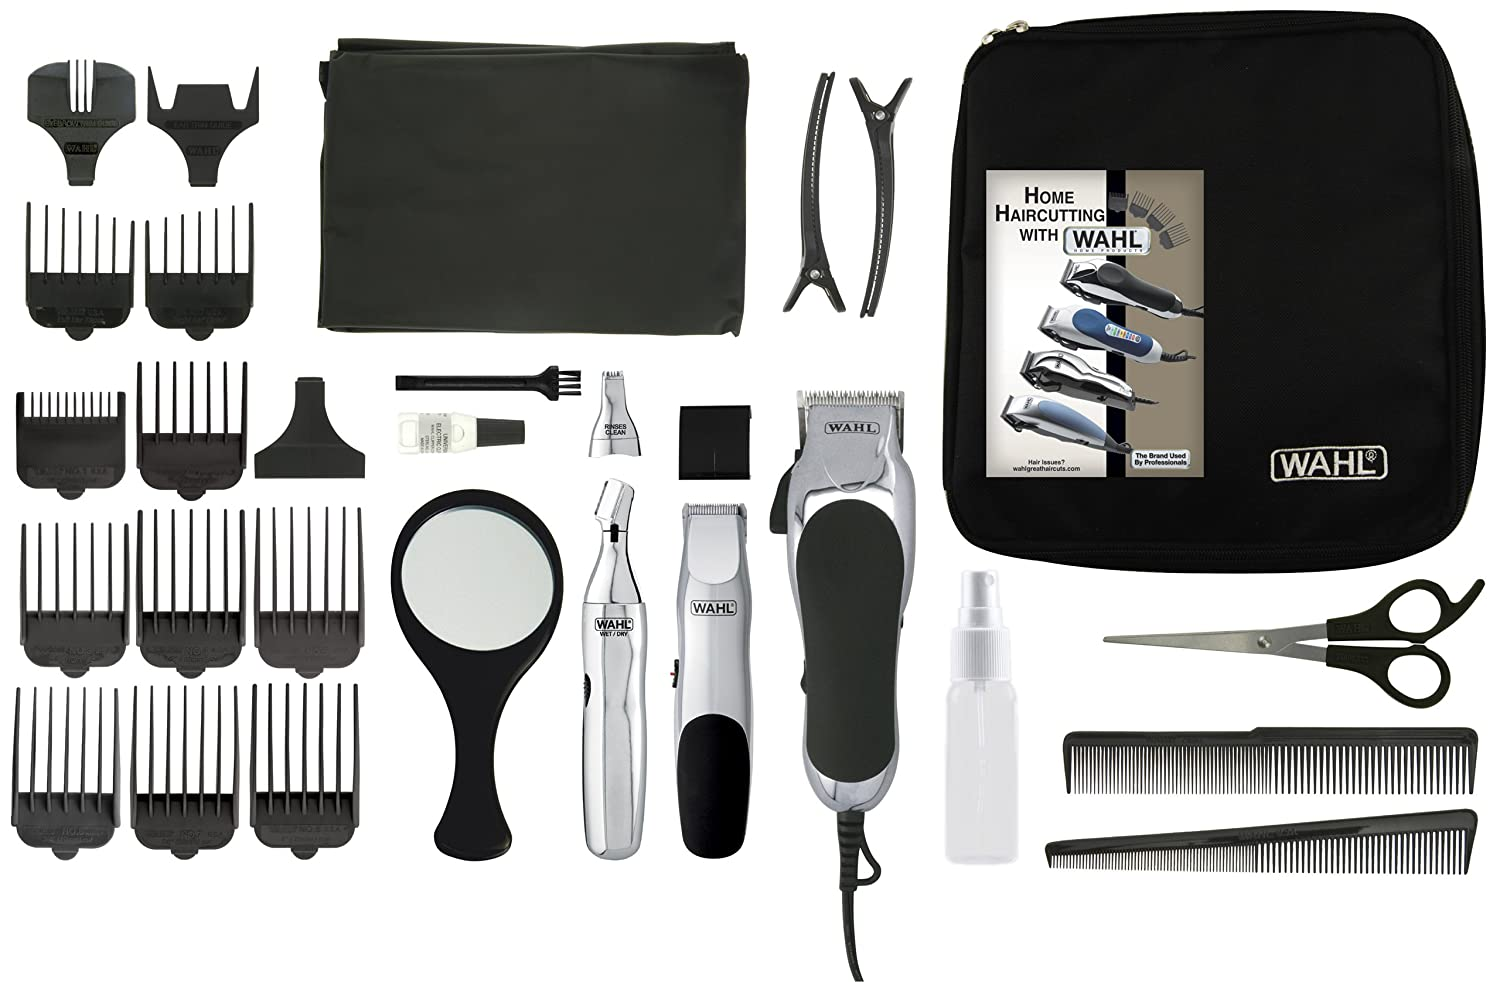 Wahl Home Barber Kit #79524-3001